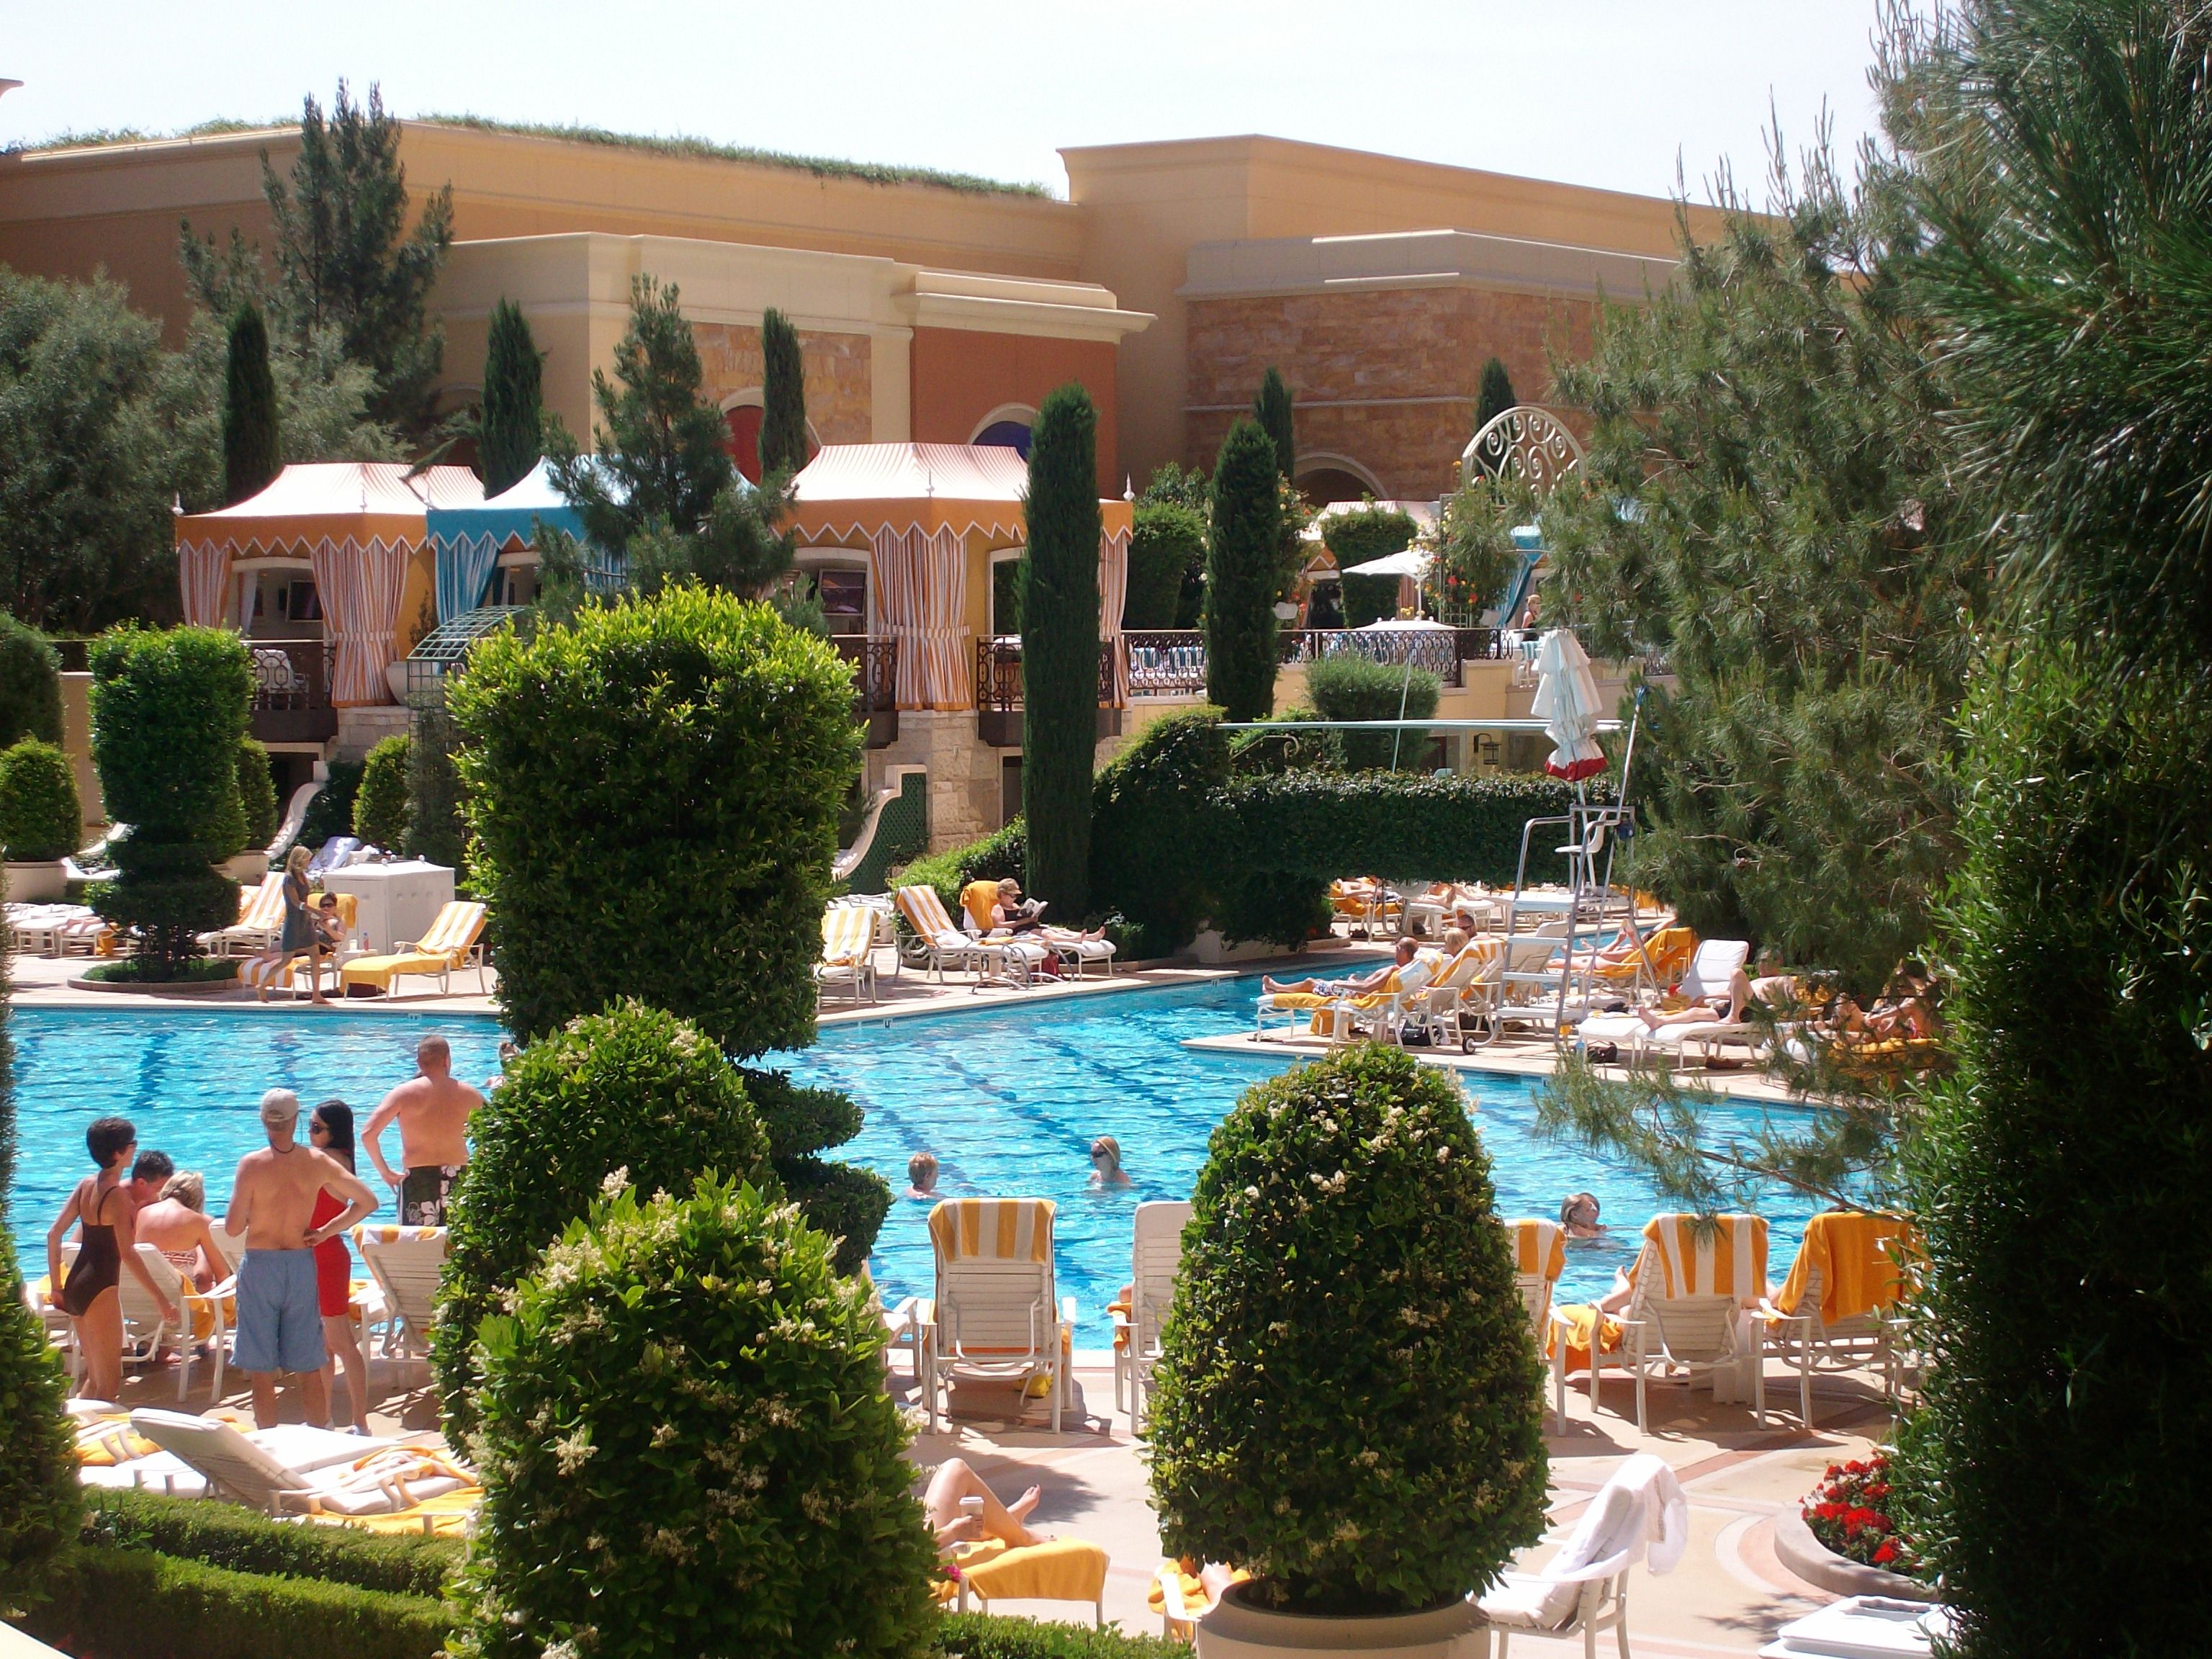 Wynn 39 s wonderful pool las vegas vegas 2014 pinterest for Pool show las vegas november